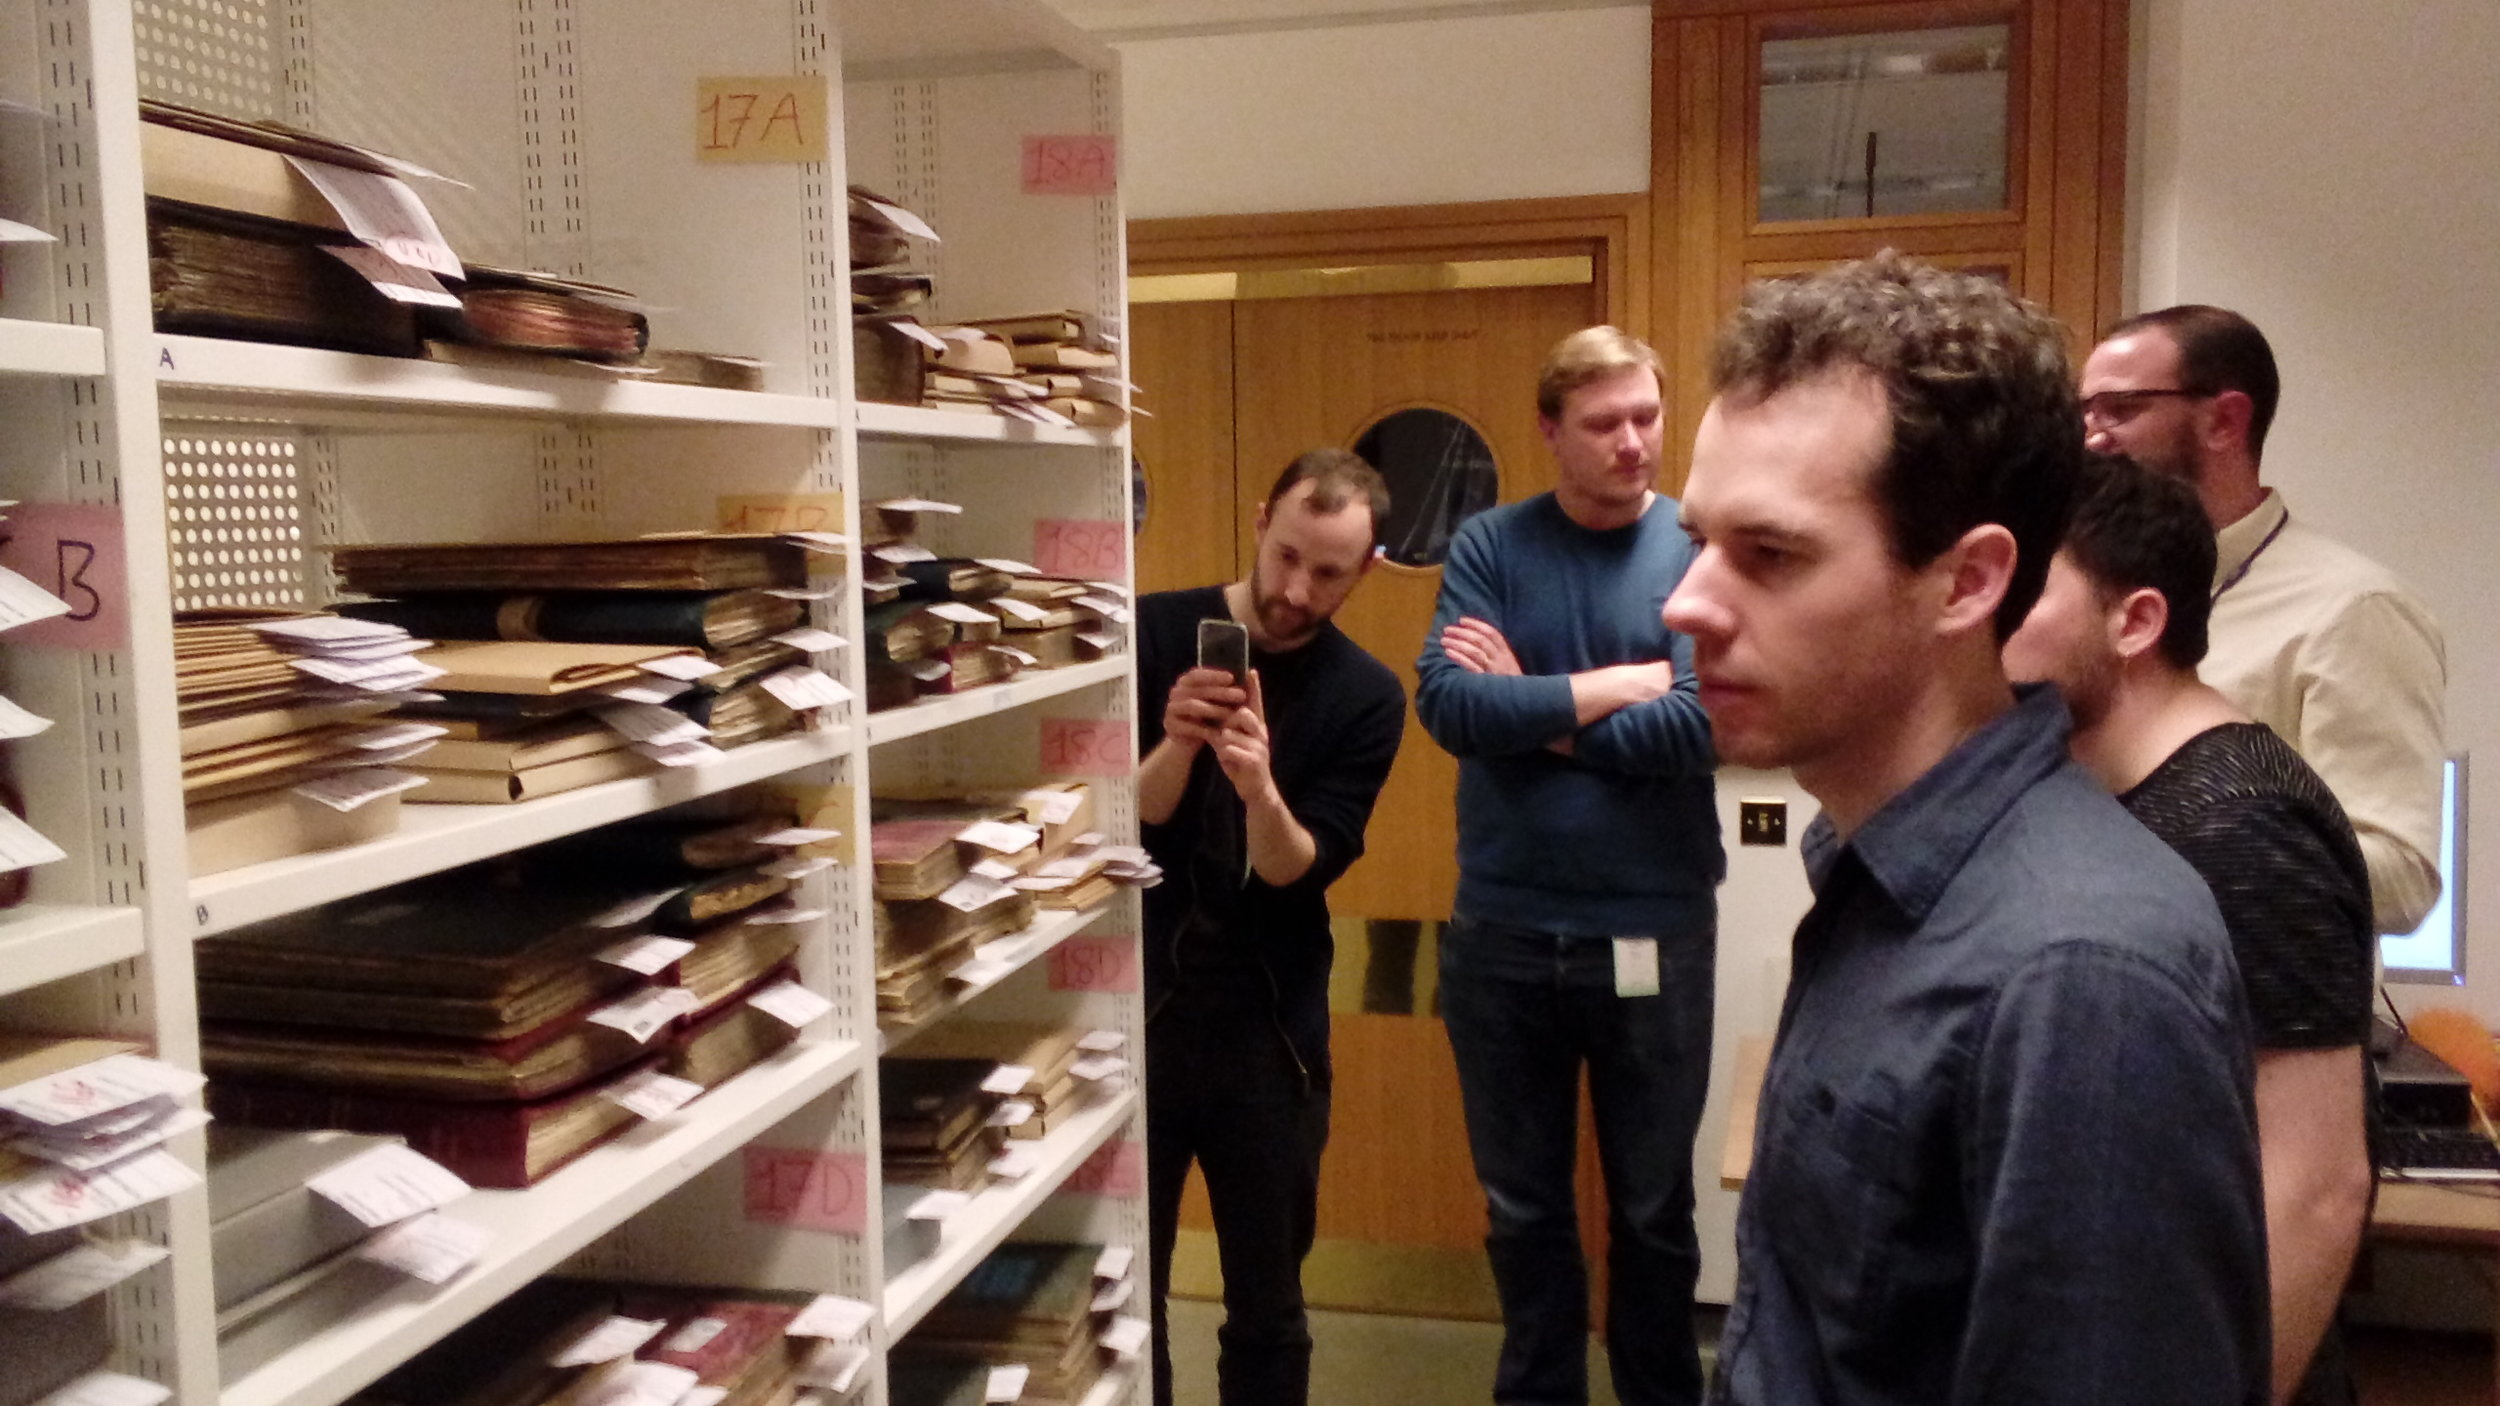 Team trip behind the scenes at the British Library